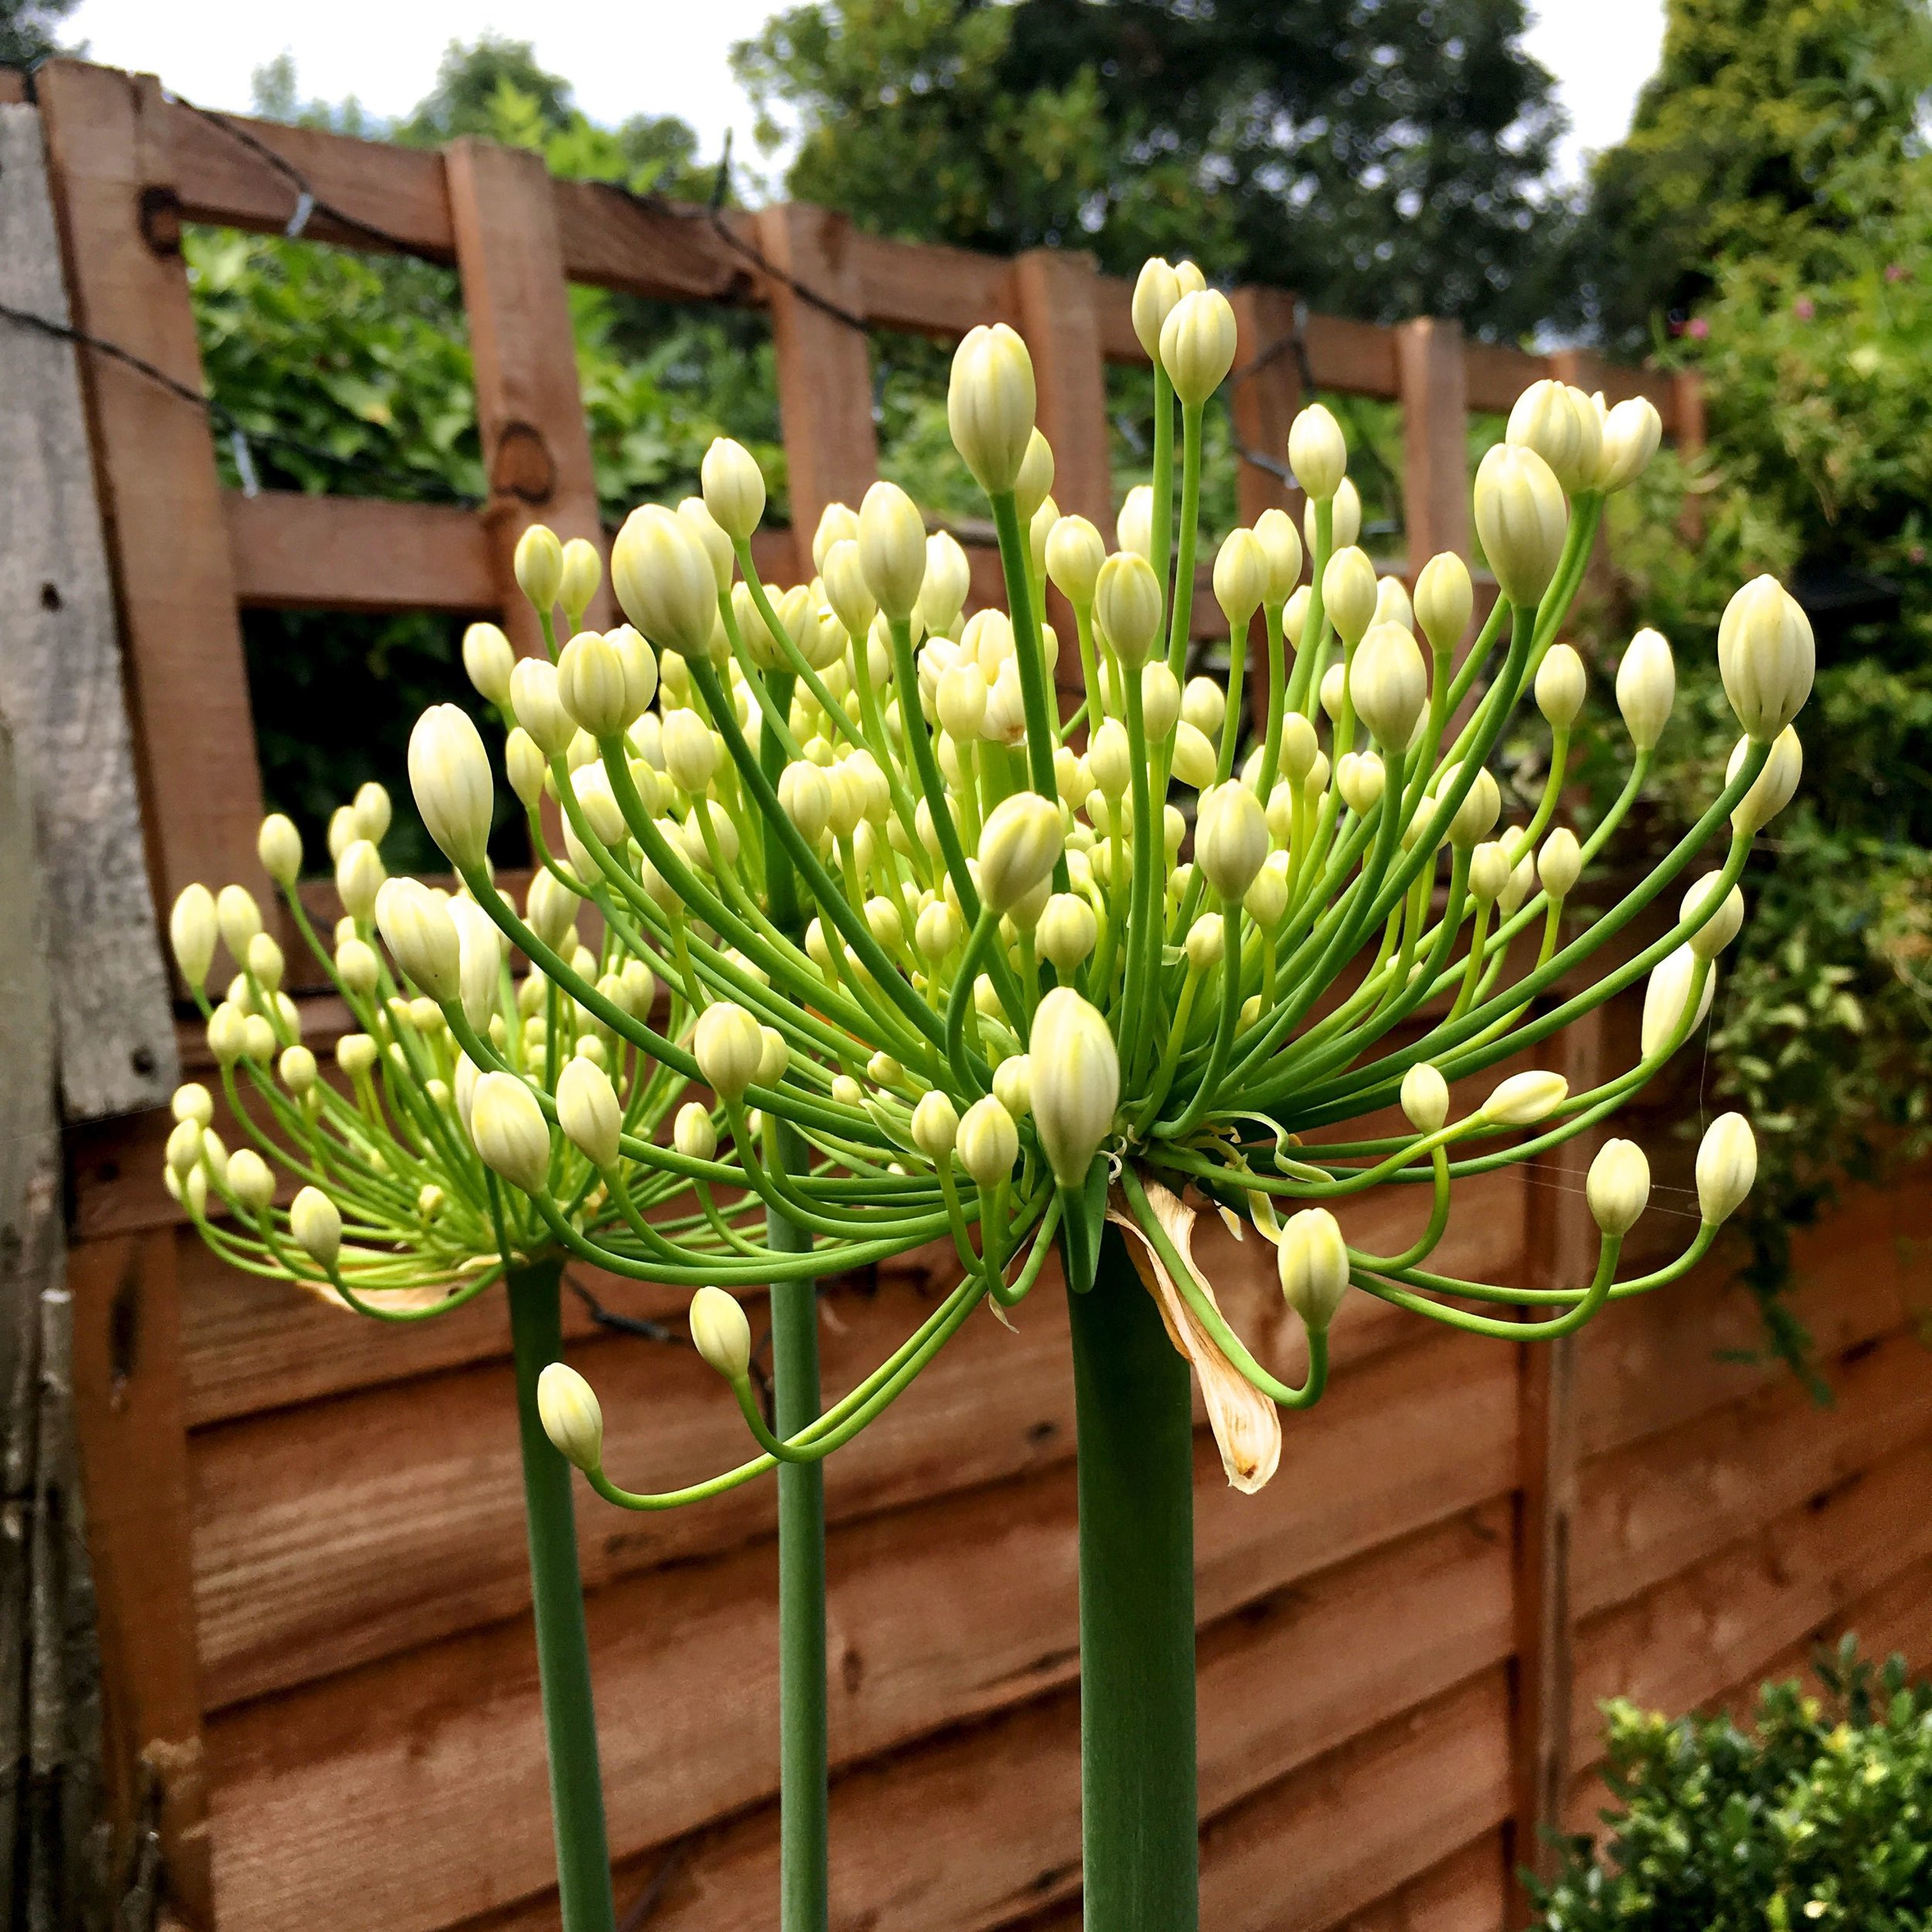 Agapanthus starting to flower